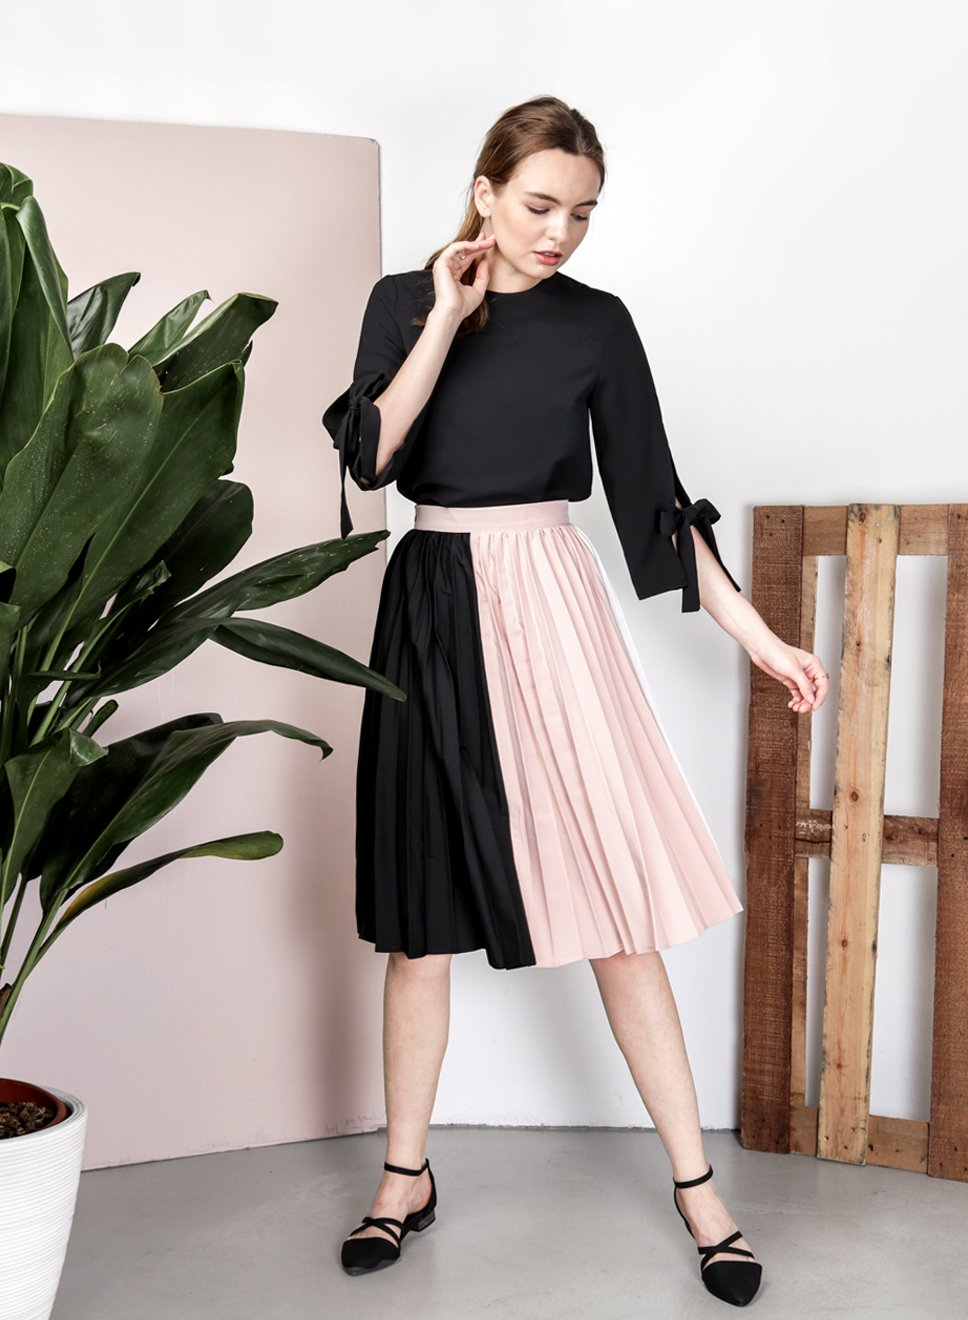 ECLIPSE Tri Colour Skirt (Black) at $ 21.50 only sold at And Well Dressed Online Fashion Store Singapore